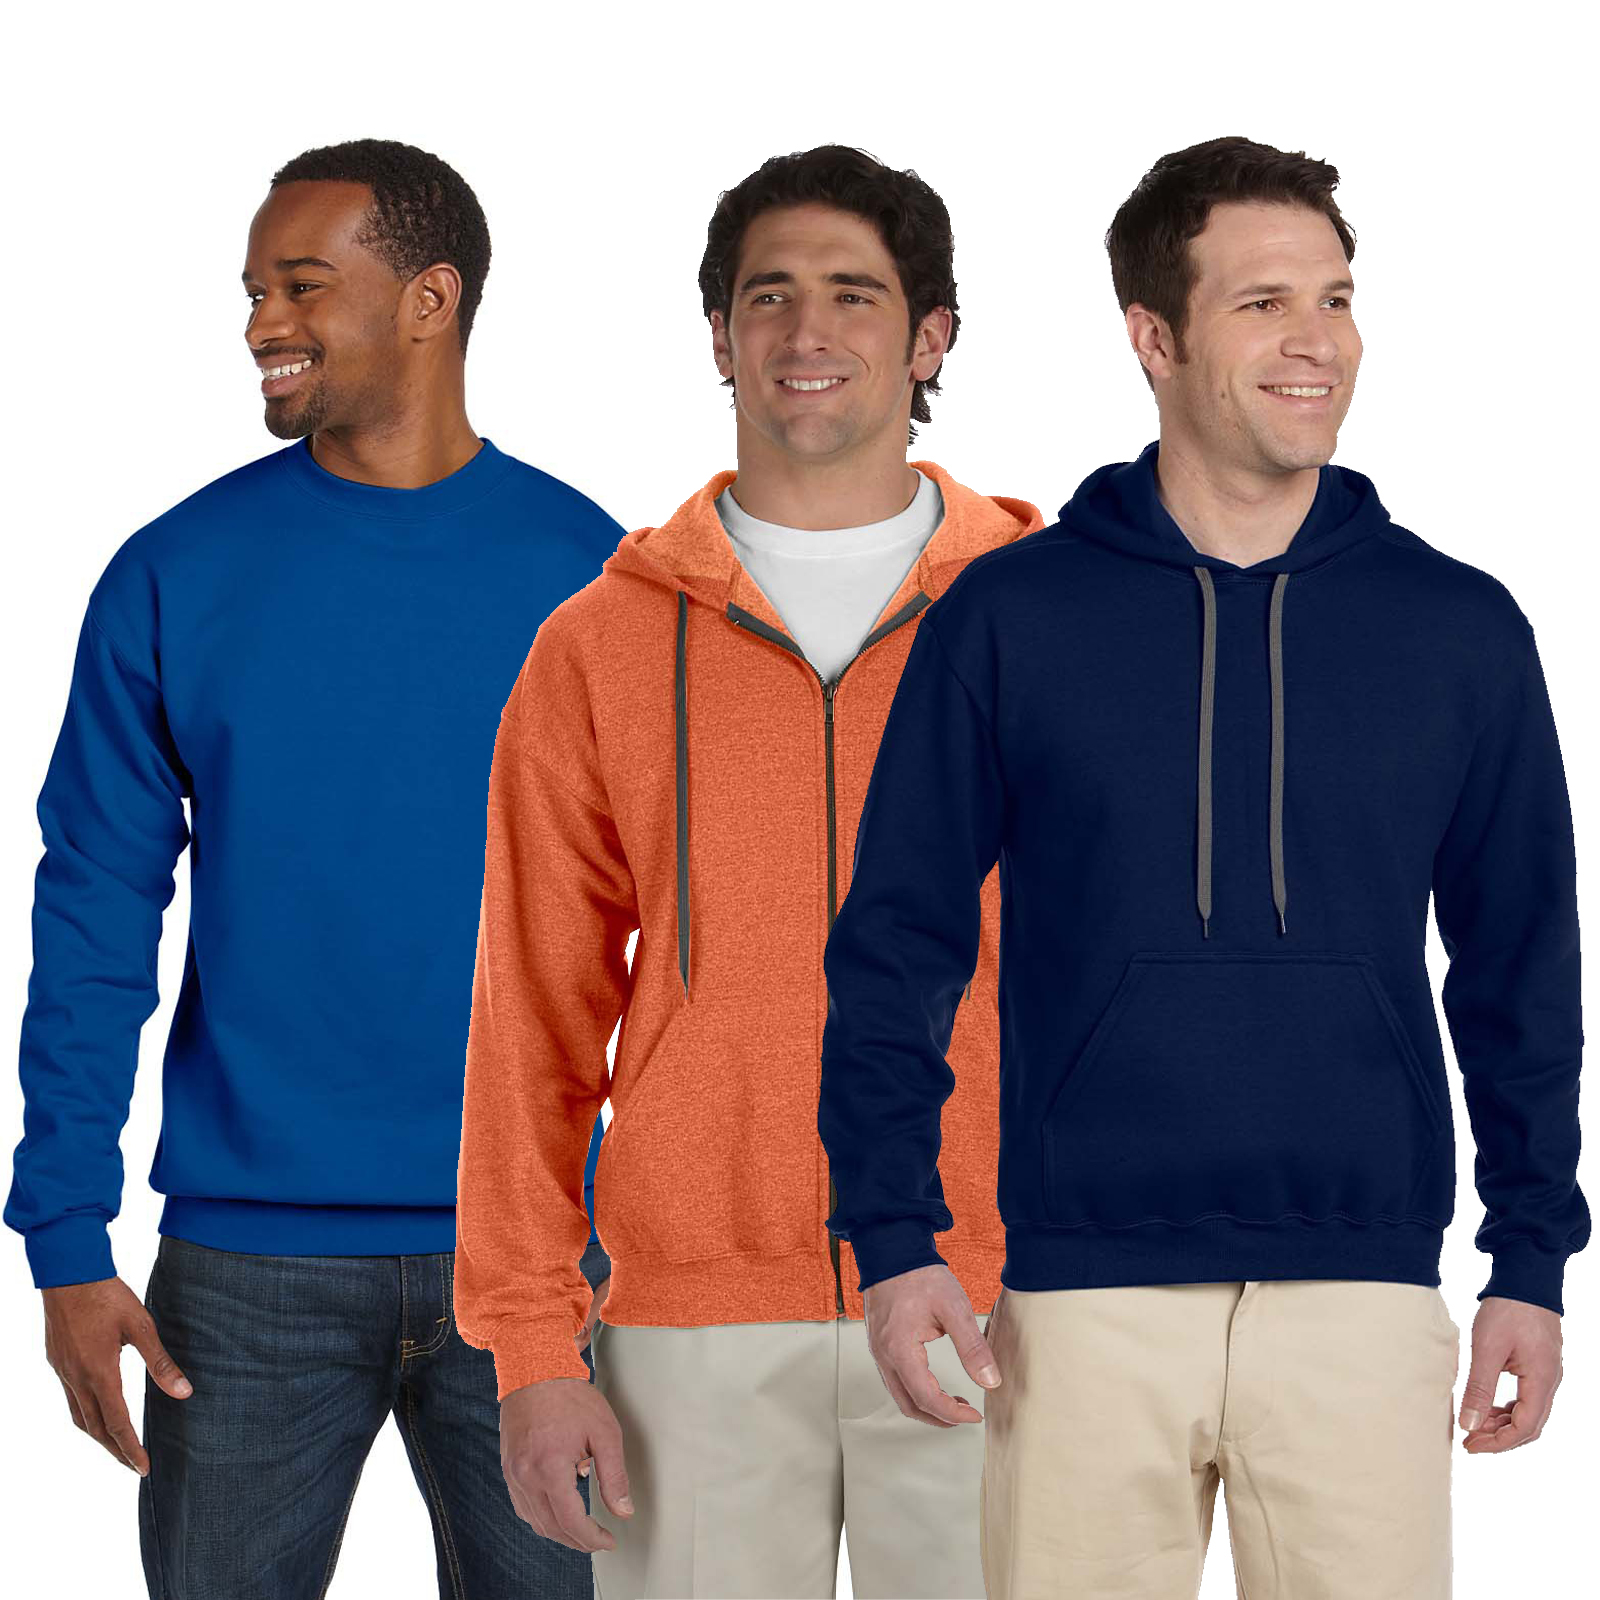 Embroidered Men's Sweatshirt Grab Bag